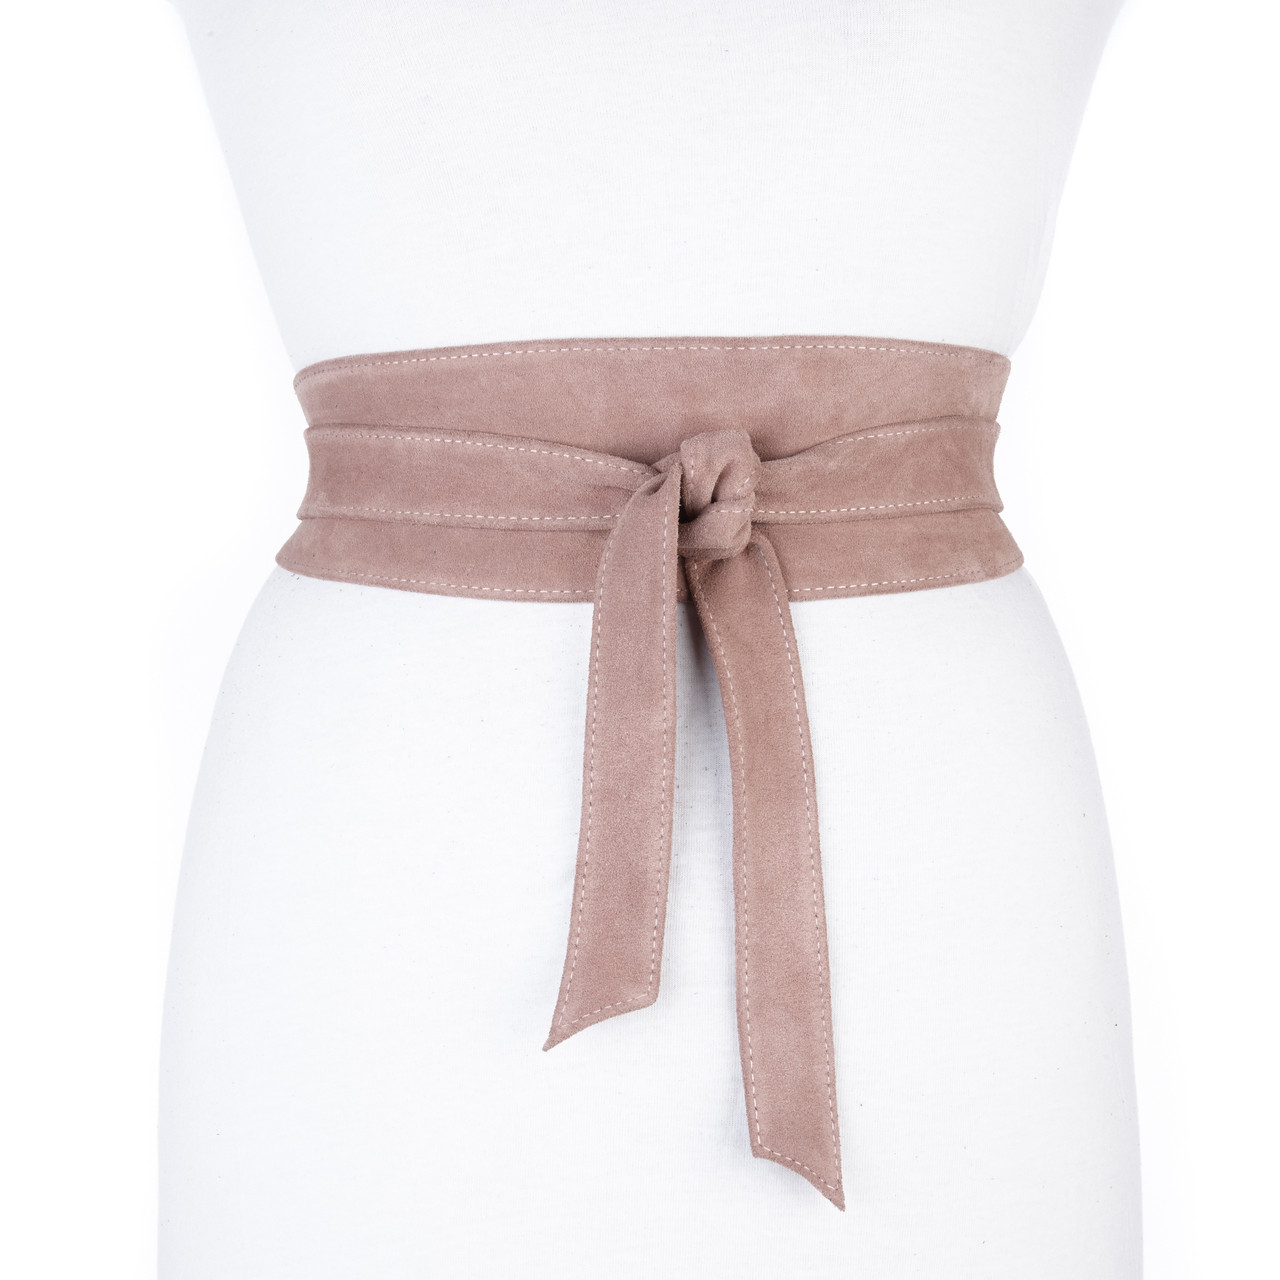 dbbeb6cd9ce2e9 NIDA LEATHER WRAP BELT IN BLUSH SUEDE - BRAVE Leather